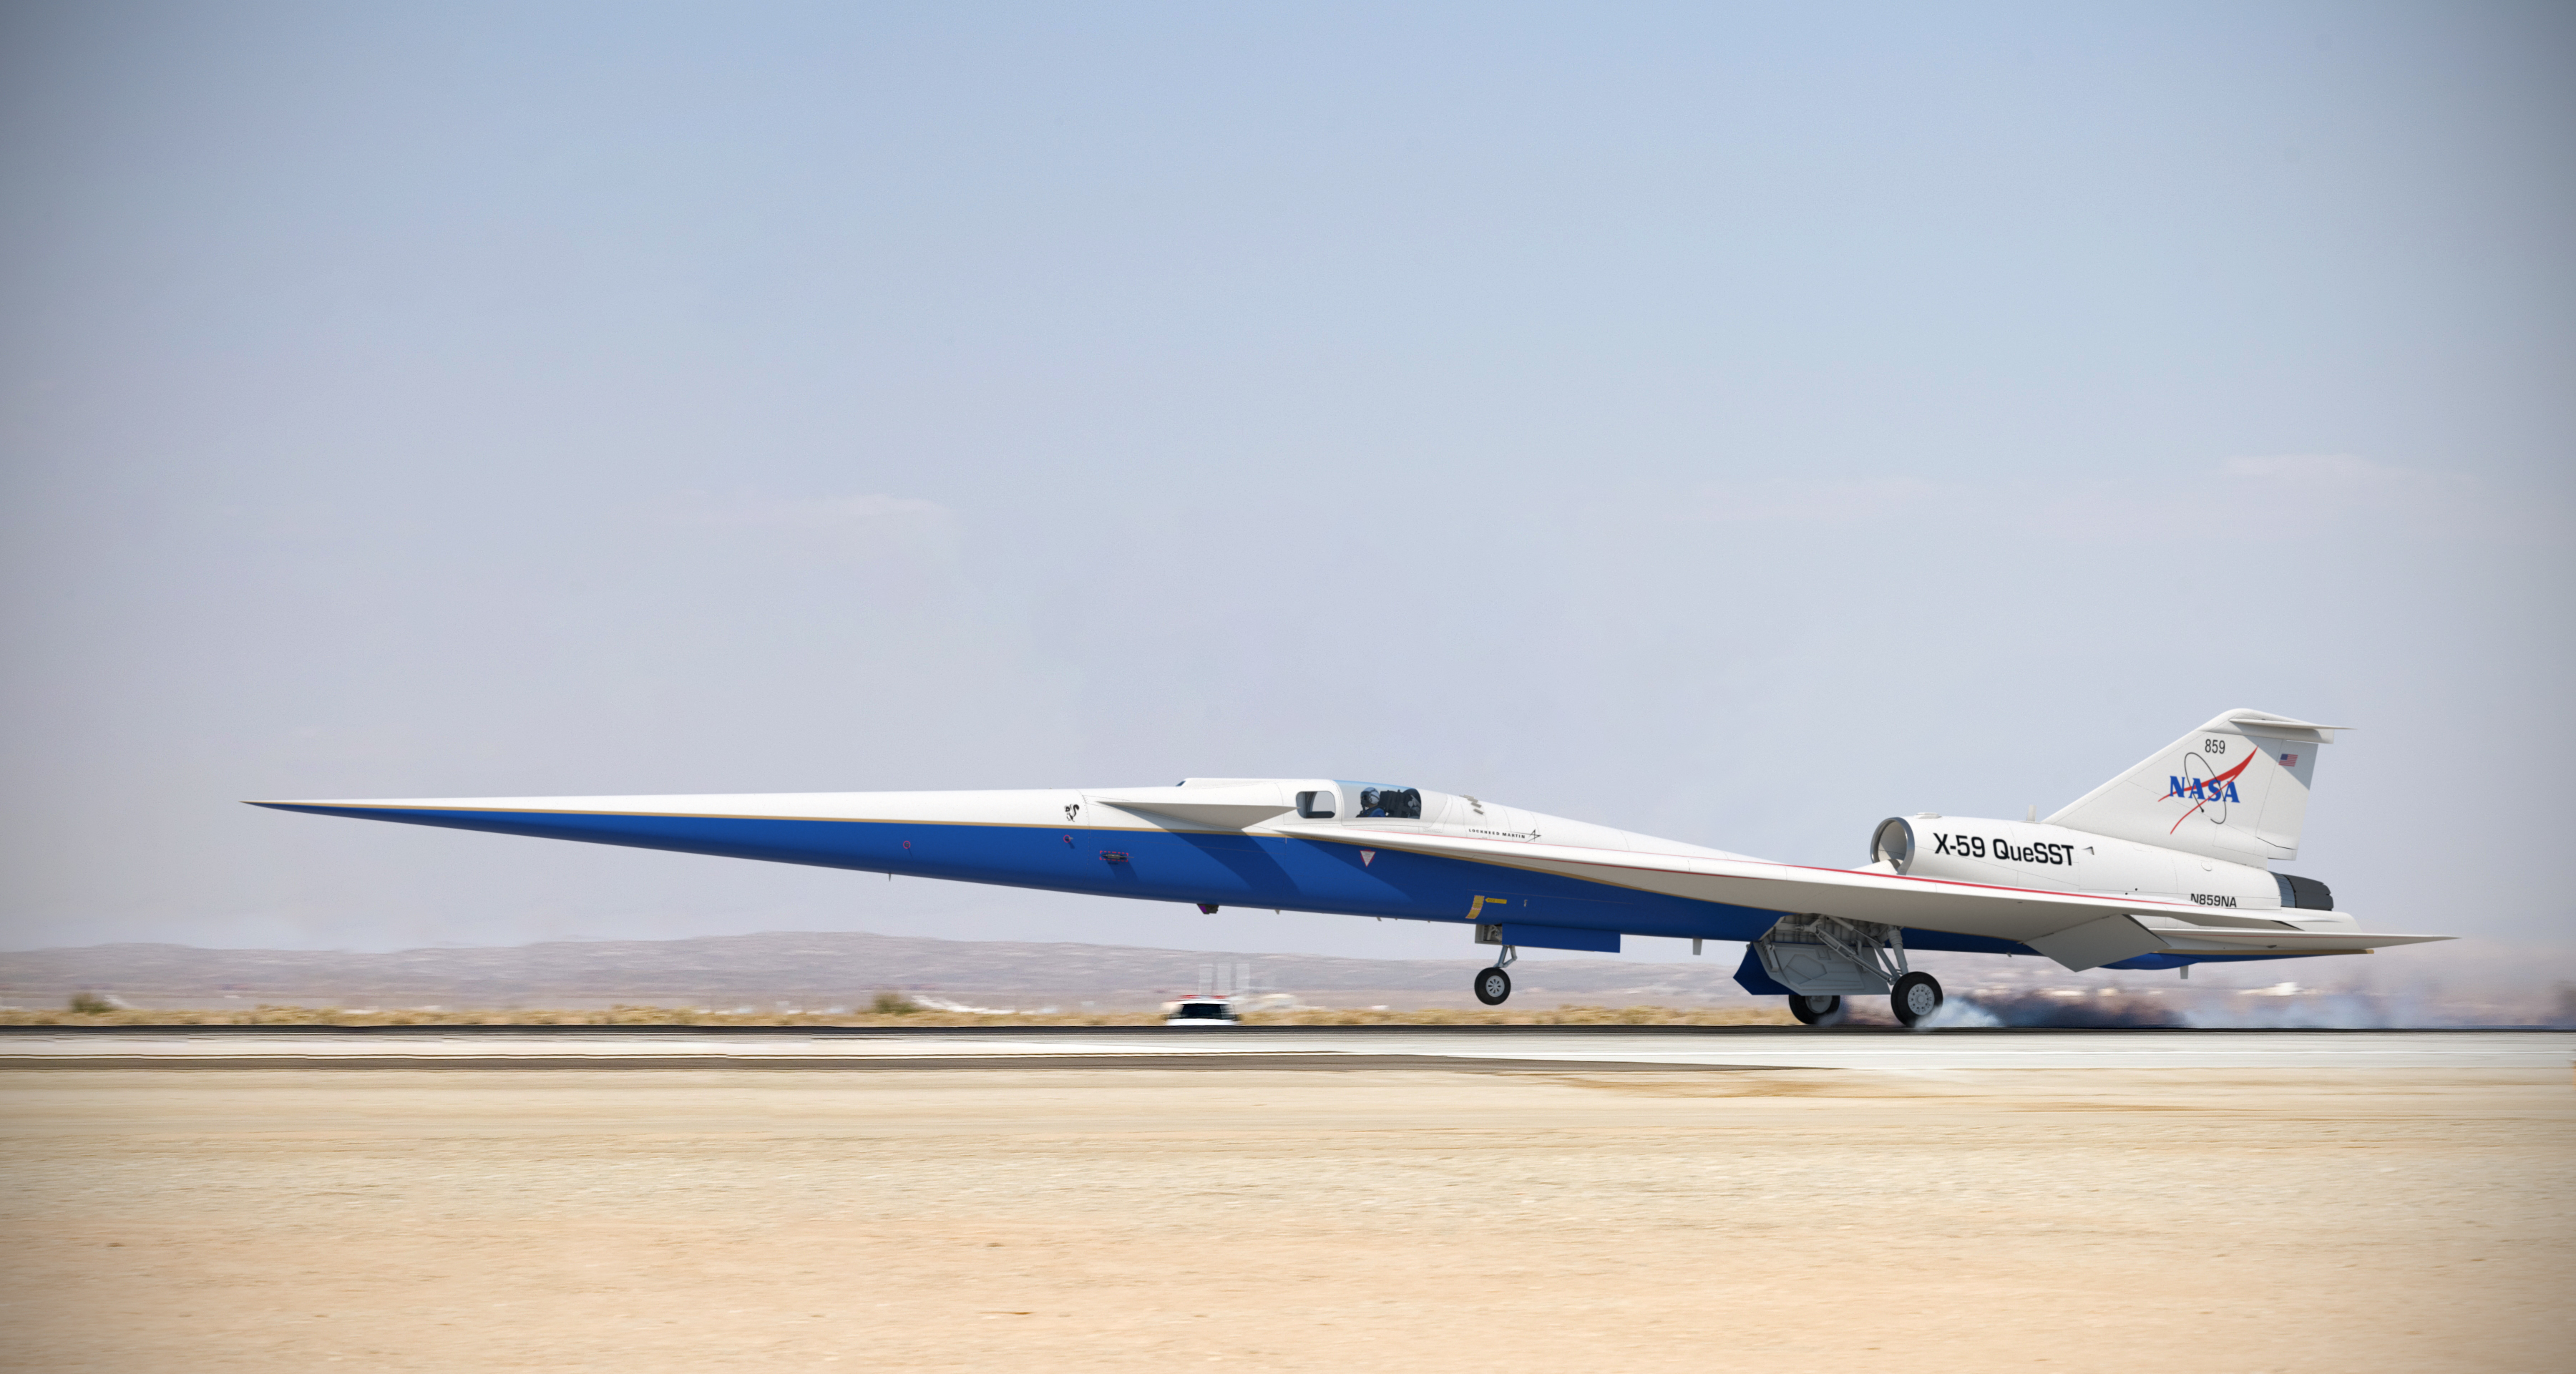 X-59 supersonic test aircraft gets final assembly nod